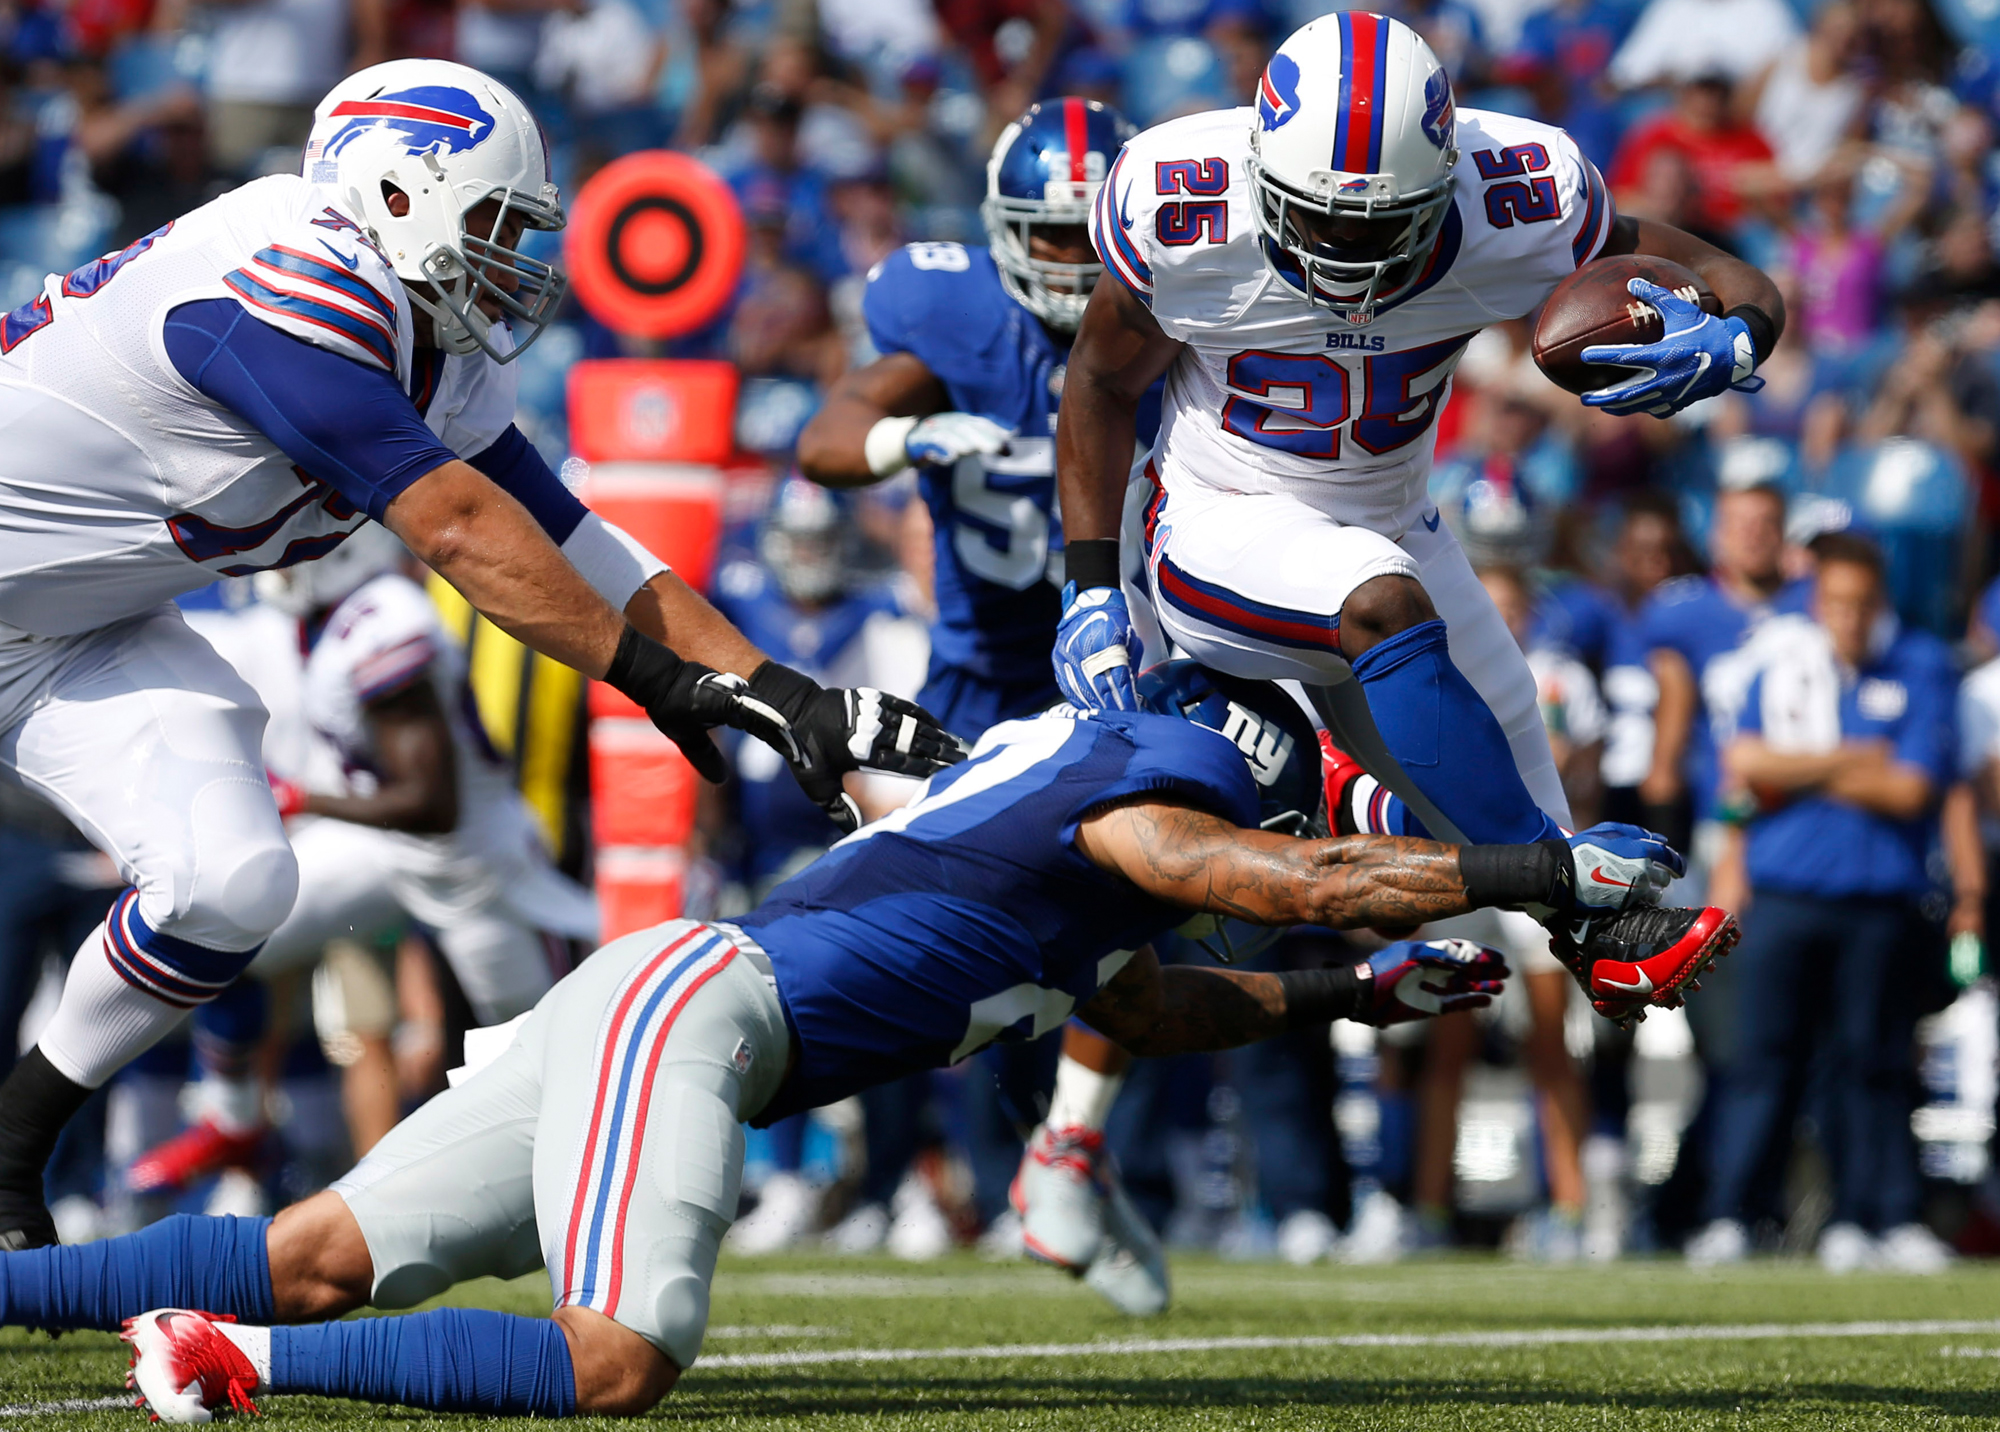 Buffalo Bills running back LeSean McCoy (25) jumps to avoid a tackle by New York Giants safety Darian Thompson (27) during the first half at New Era Field.